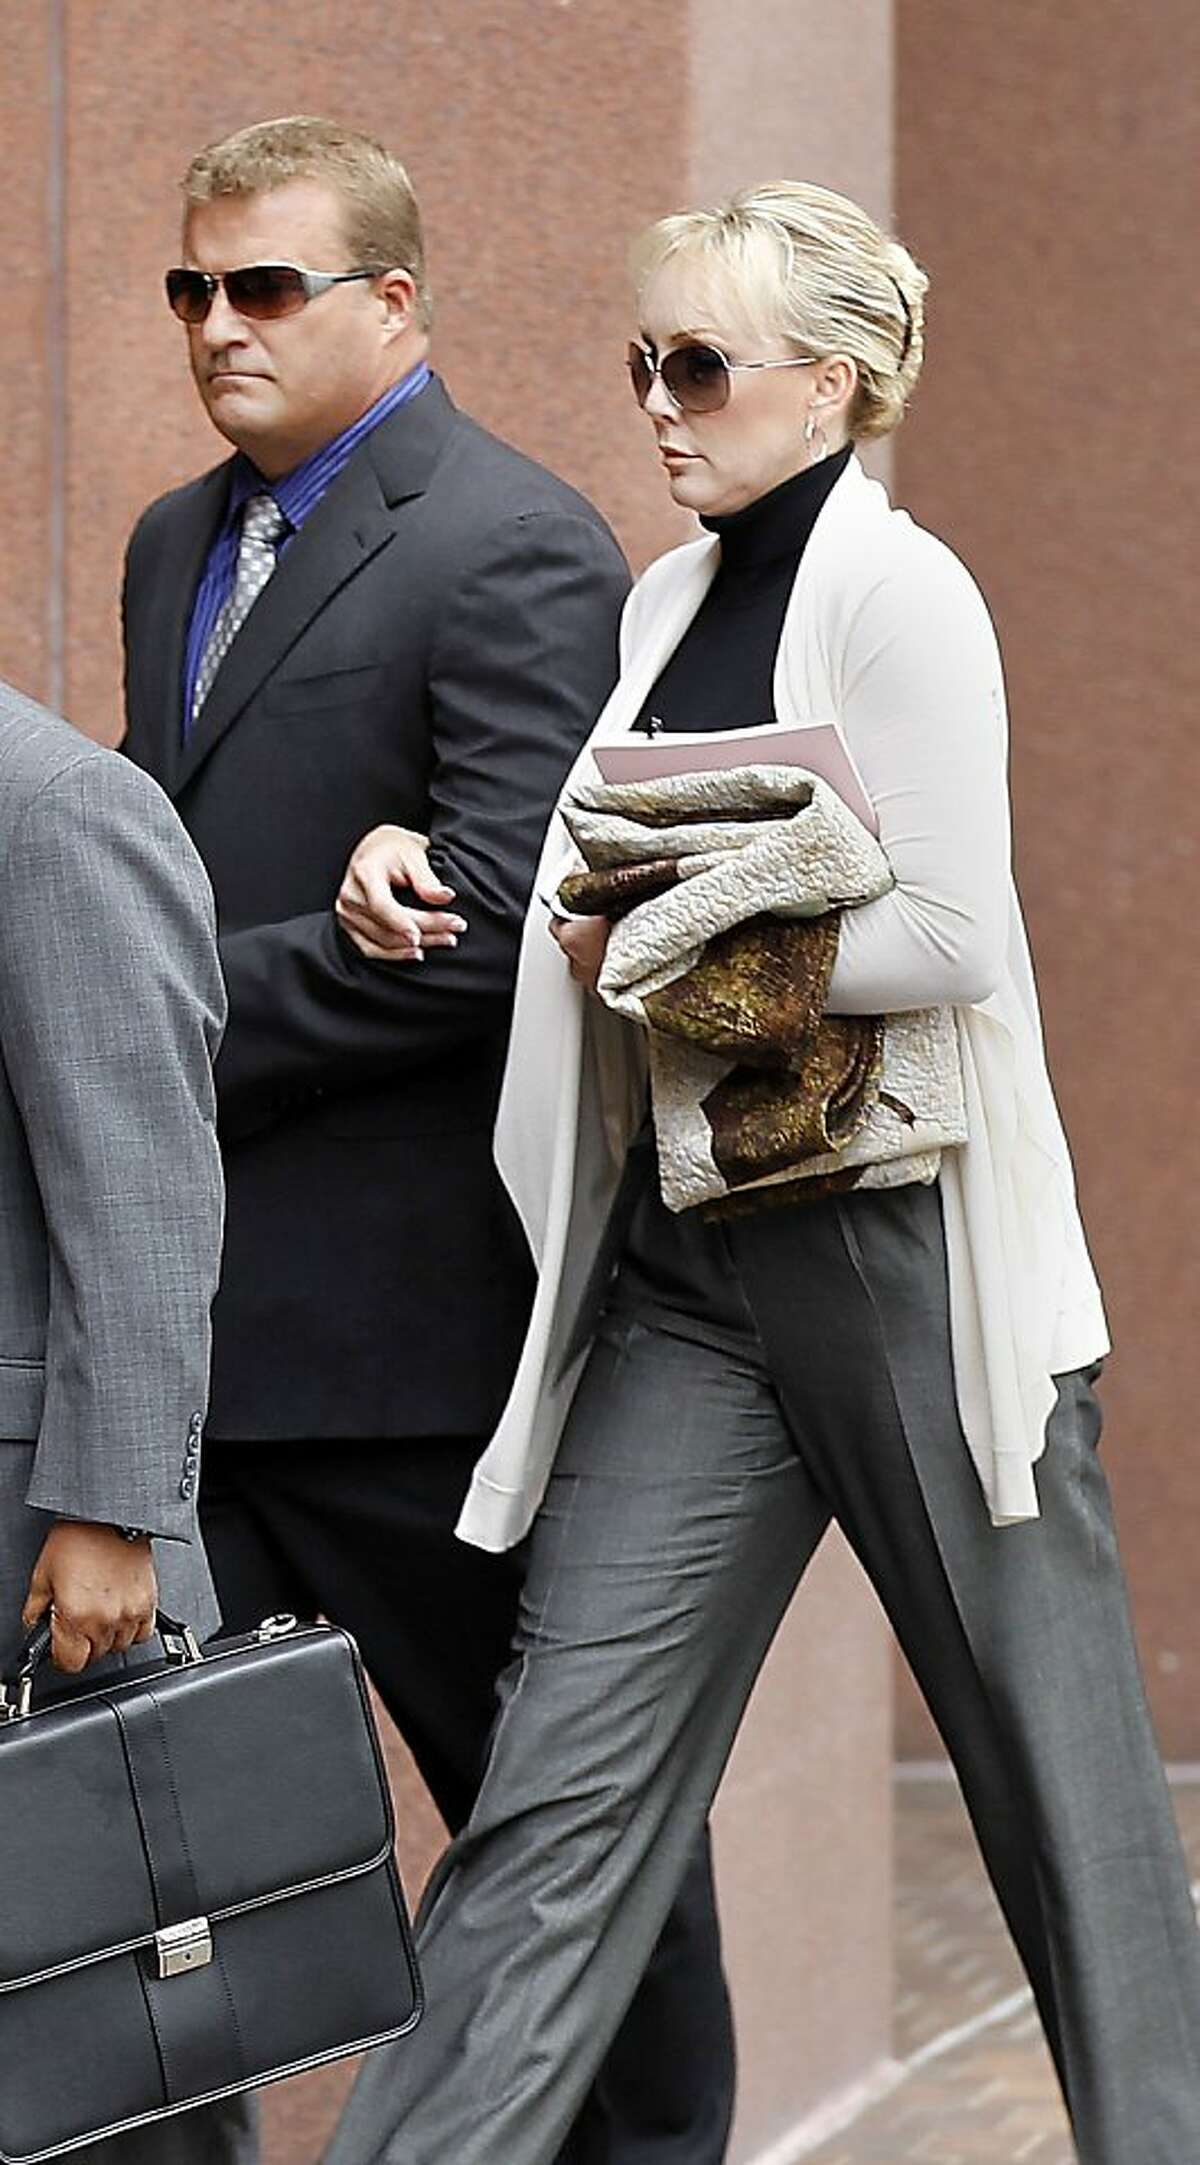 Defendant Theresa Erickson, right, and her husband John Erickson, arrive at Federal Court in downtown San Diego, Friday Feb. 24, 2012. Erickson, 44, a California lawyer who was a respected reproductive law specialist was sentenced Friday to five months in prison and nine months of home confinement for her role in what prosecutors say was a baby-selling scheme. U.S. District Court Judge Anthony Bataglia also ordered Theresa Erickson, 44, to pay a $70,000 fine. Co-defendant Carla Chambers was sentenced to five months in prison and seven months in home confinement. Both women had faced up to five years in prison. (AP Photo/U-T San Diego, ) SAN DIEGO COUNTY OUT; NO SALES; COMMERCIAL INTERNET OUT; FOREIGN OUT